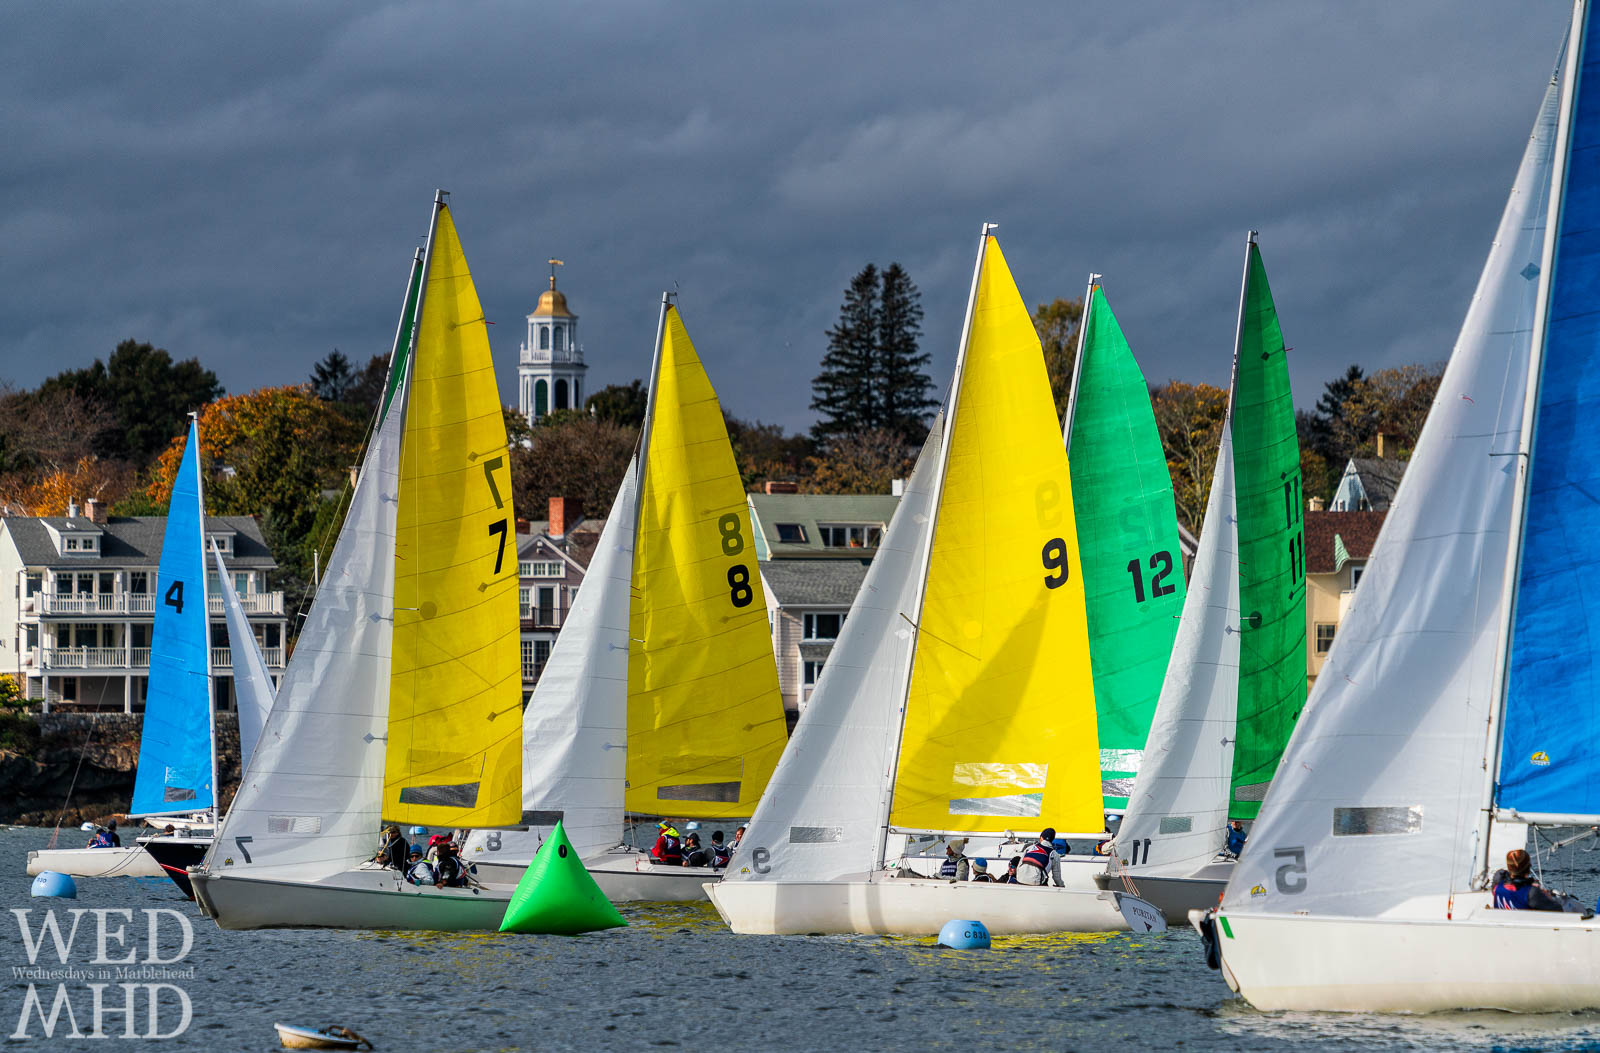 The annual Halloween Race takes place inside Marblehead Harbor with colorful sailboats racing neck and neck past familiar landmarks like Old North Church